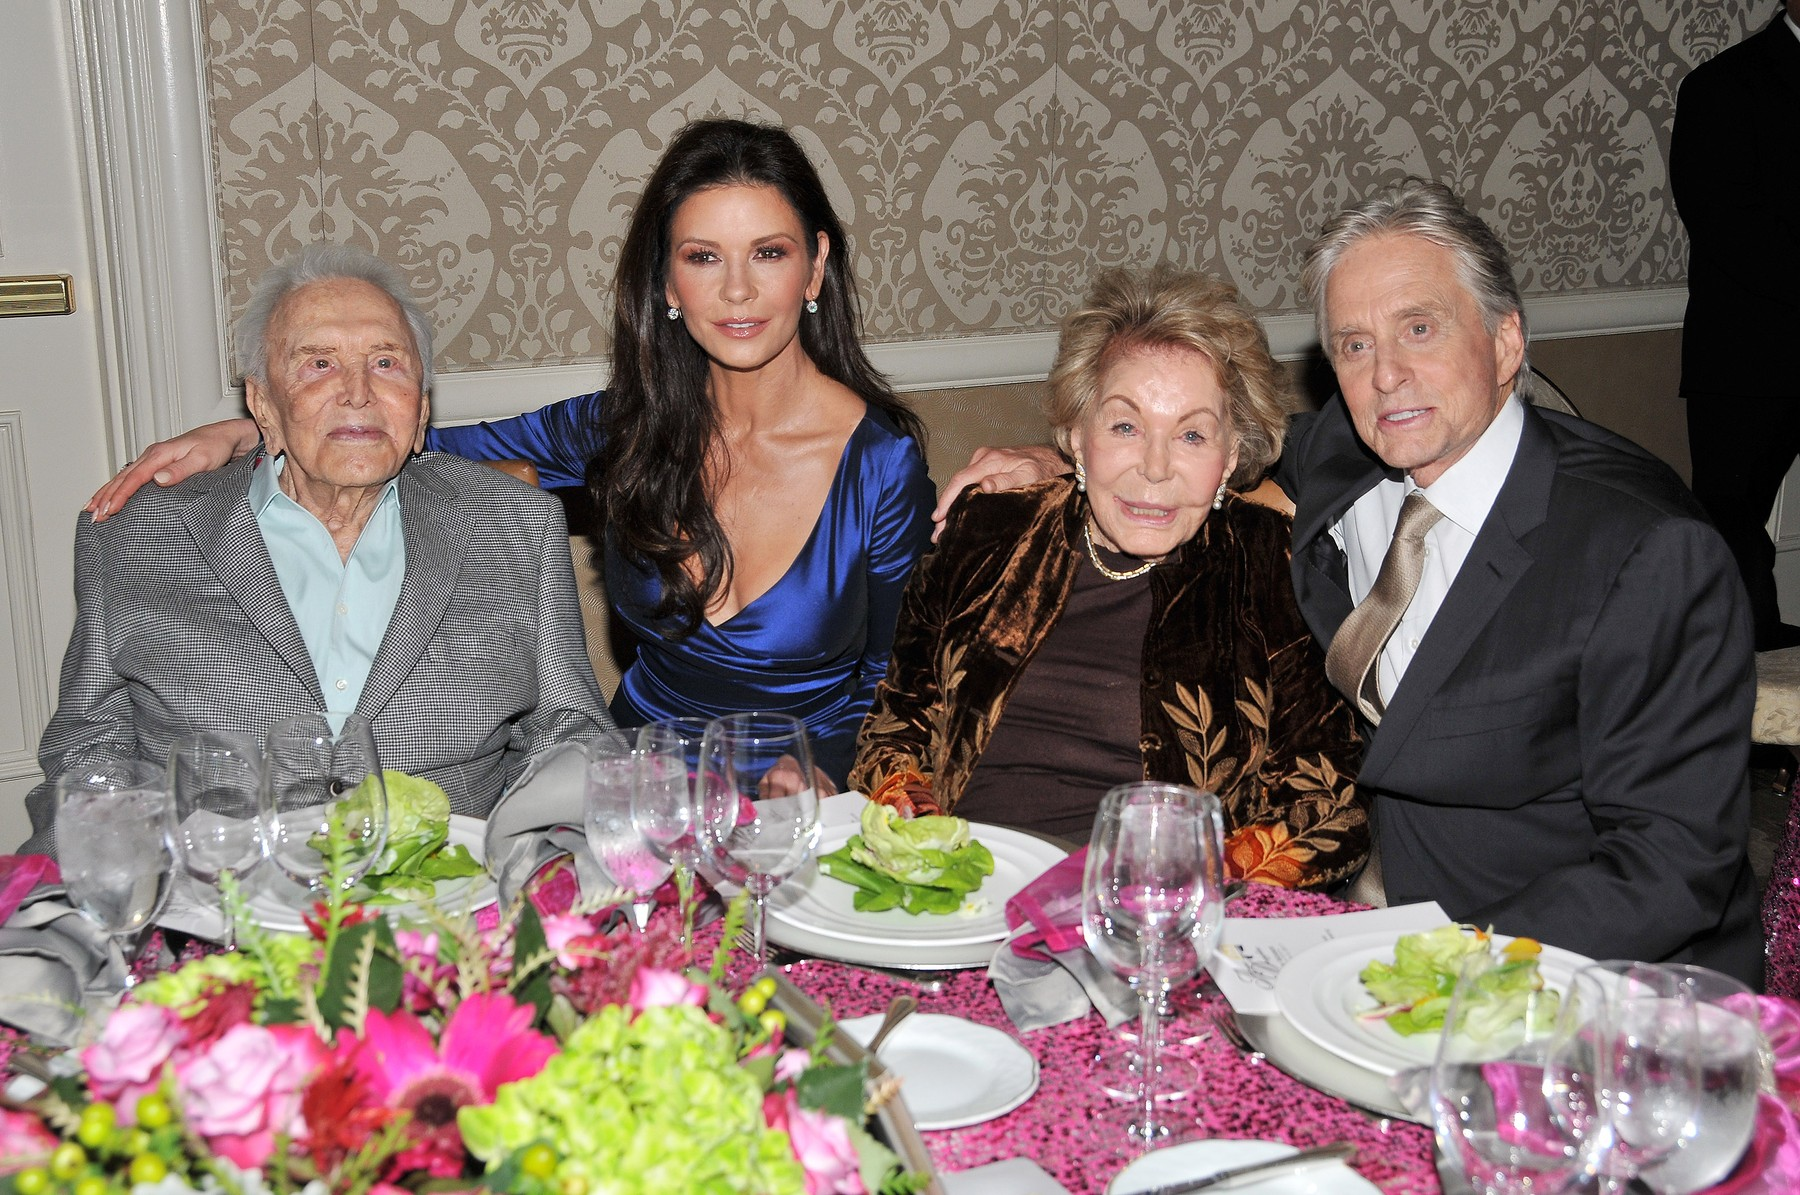 (L-R) Kirk Douglas, Catherine Zeta Jones, Anne Douglas and Michael Douglas at The Los Angeles Mission Legacy Of Vision Gala held at the Four Seasons Hotel Los Angeles in Beverly Hills, CA on Thursday, November 9 , 2017., Image: 355033692, License: Rights-managed, Restrictions: *** World Rights ***, Model Release: no, Credit line: Sipa USA / ddp USA / Profimedia